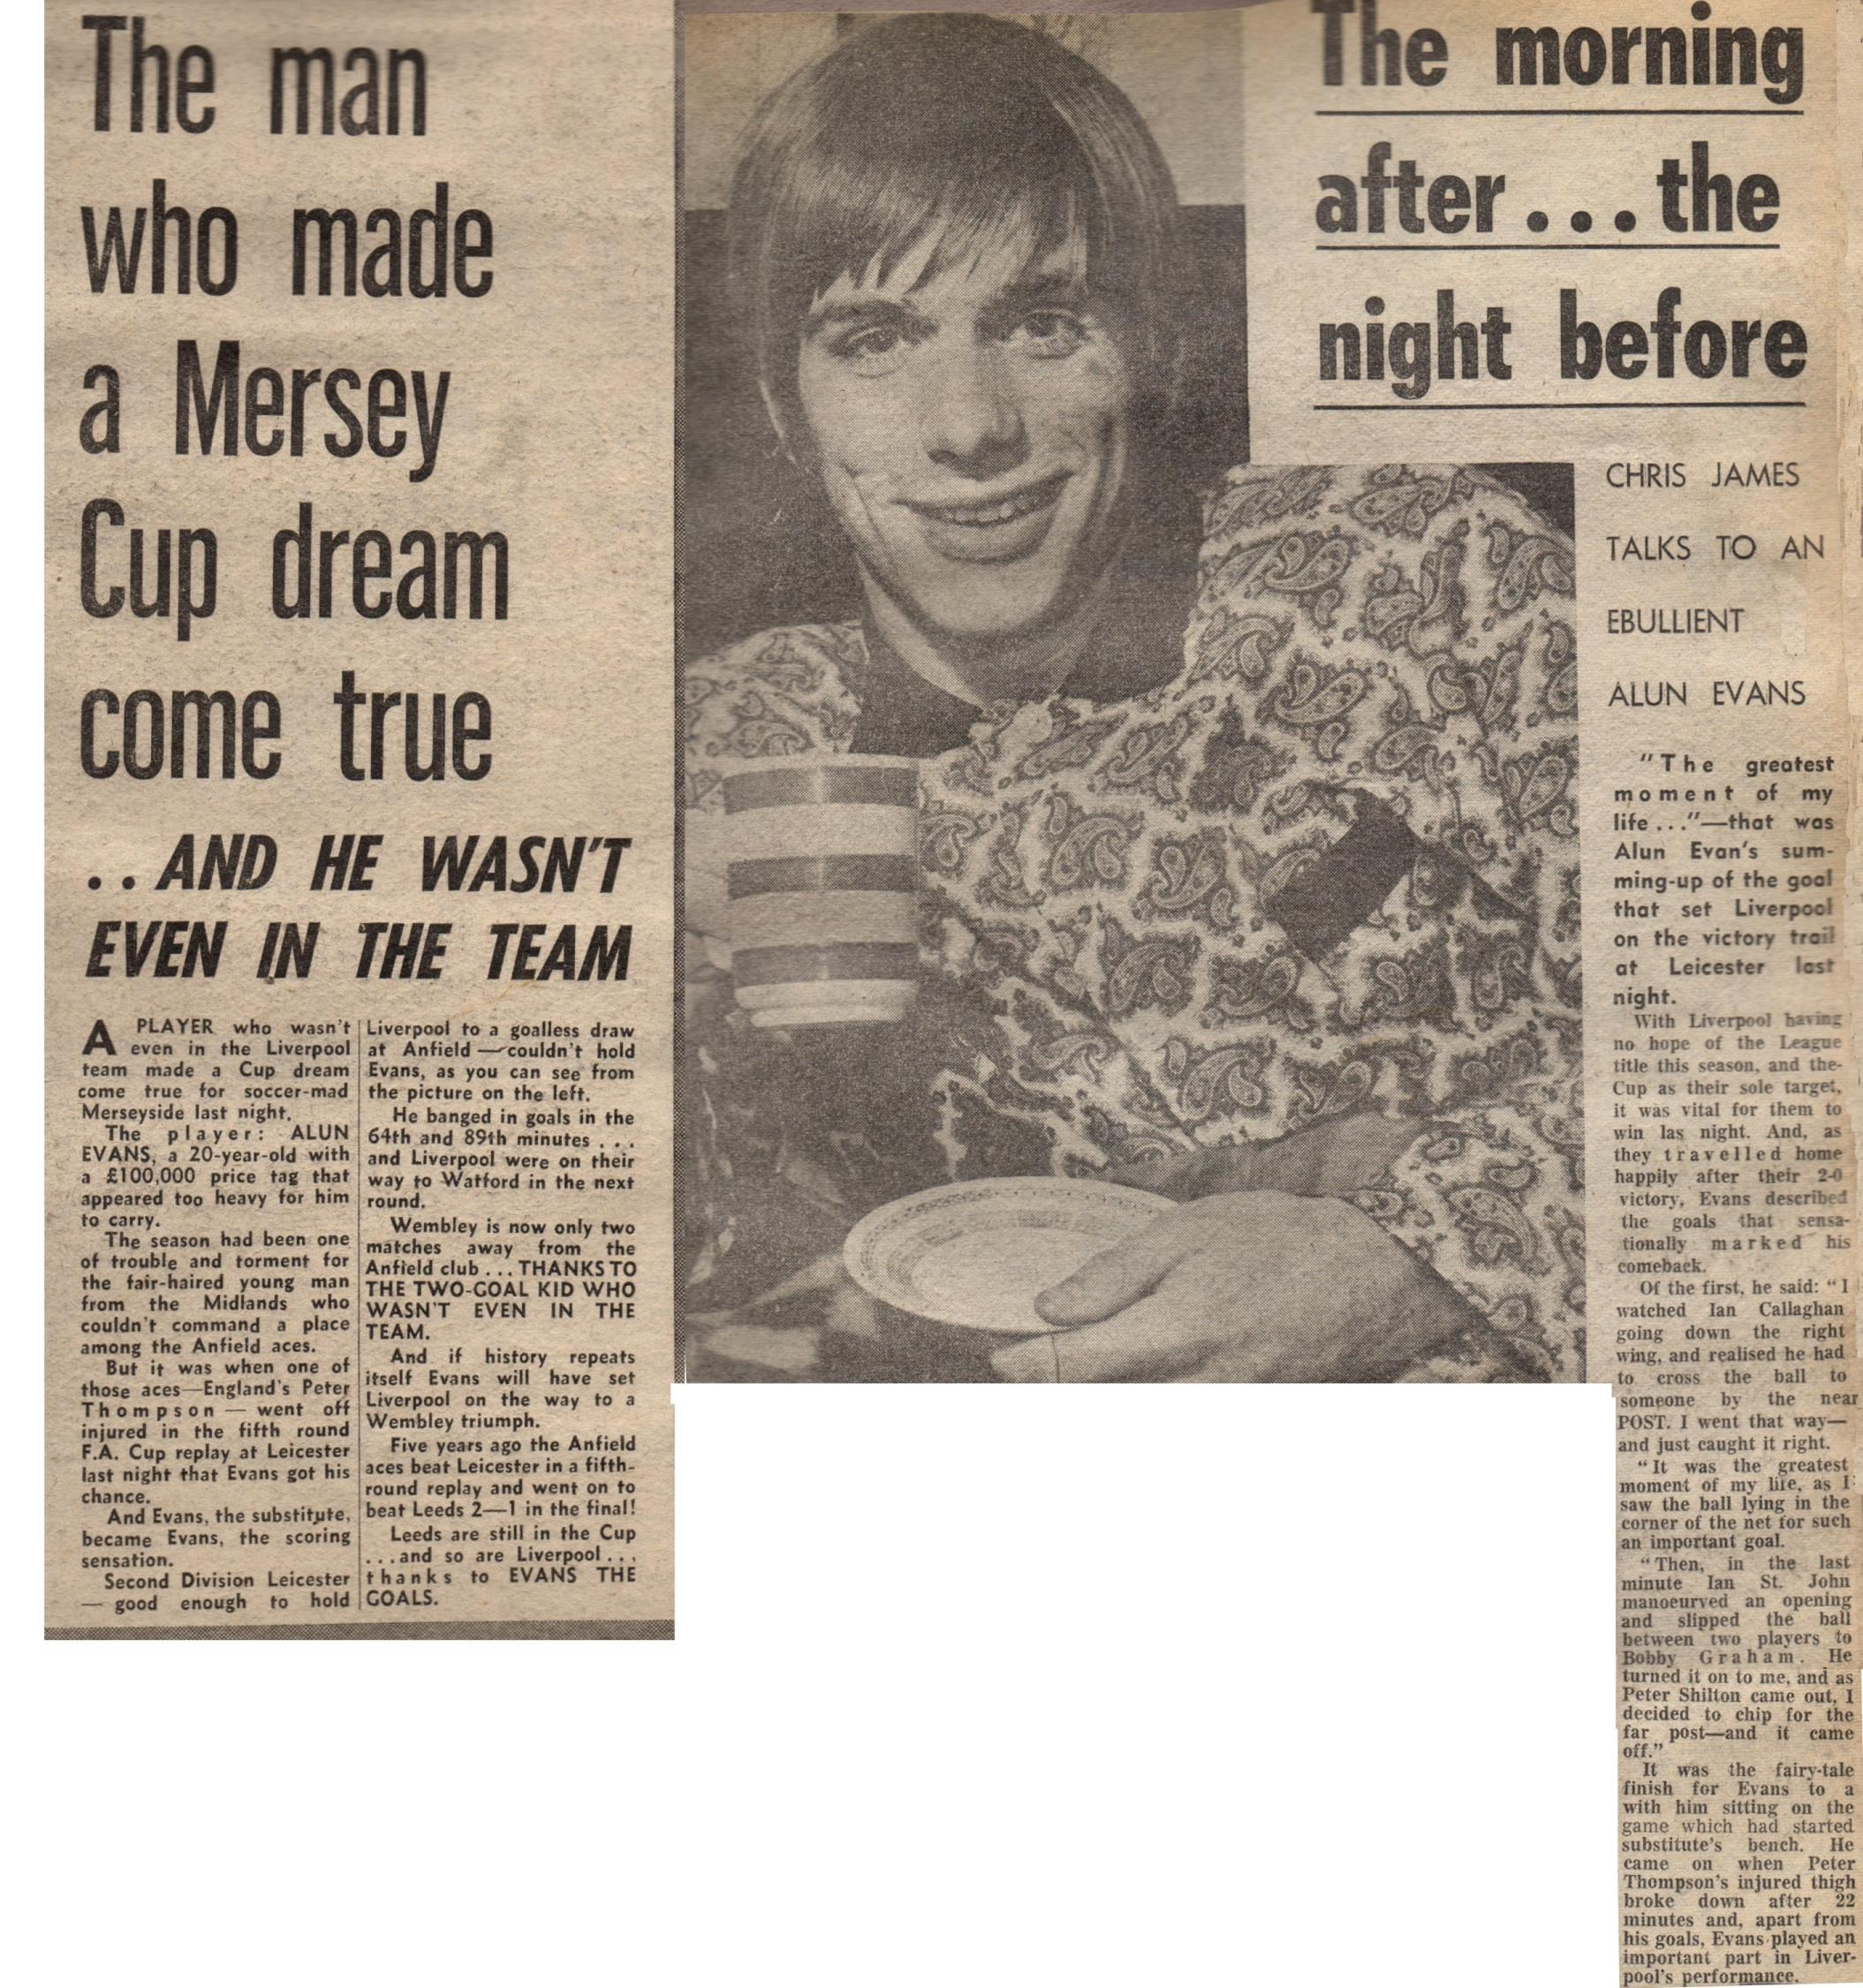 11 February 1970 - Evans returns to side in glorious fashion!